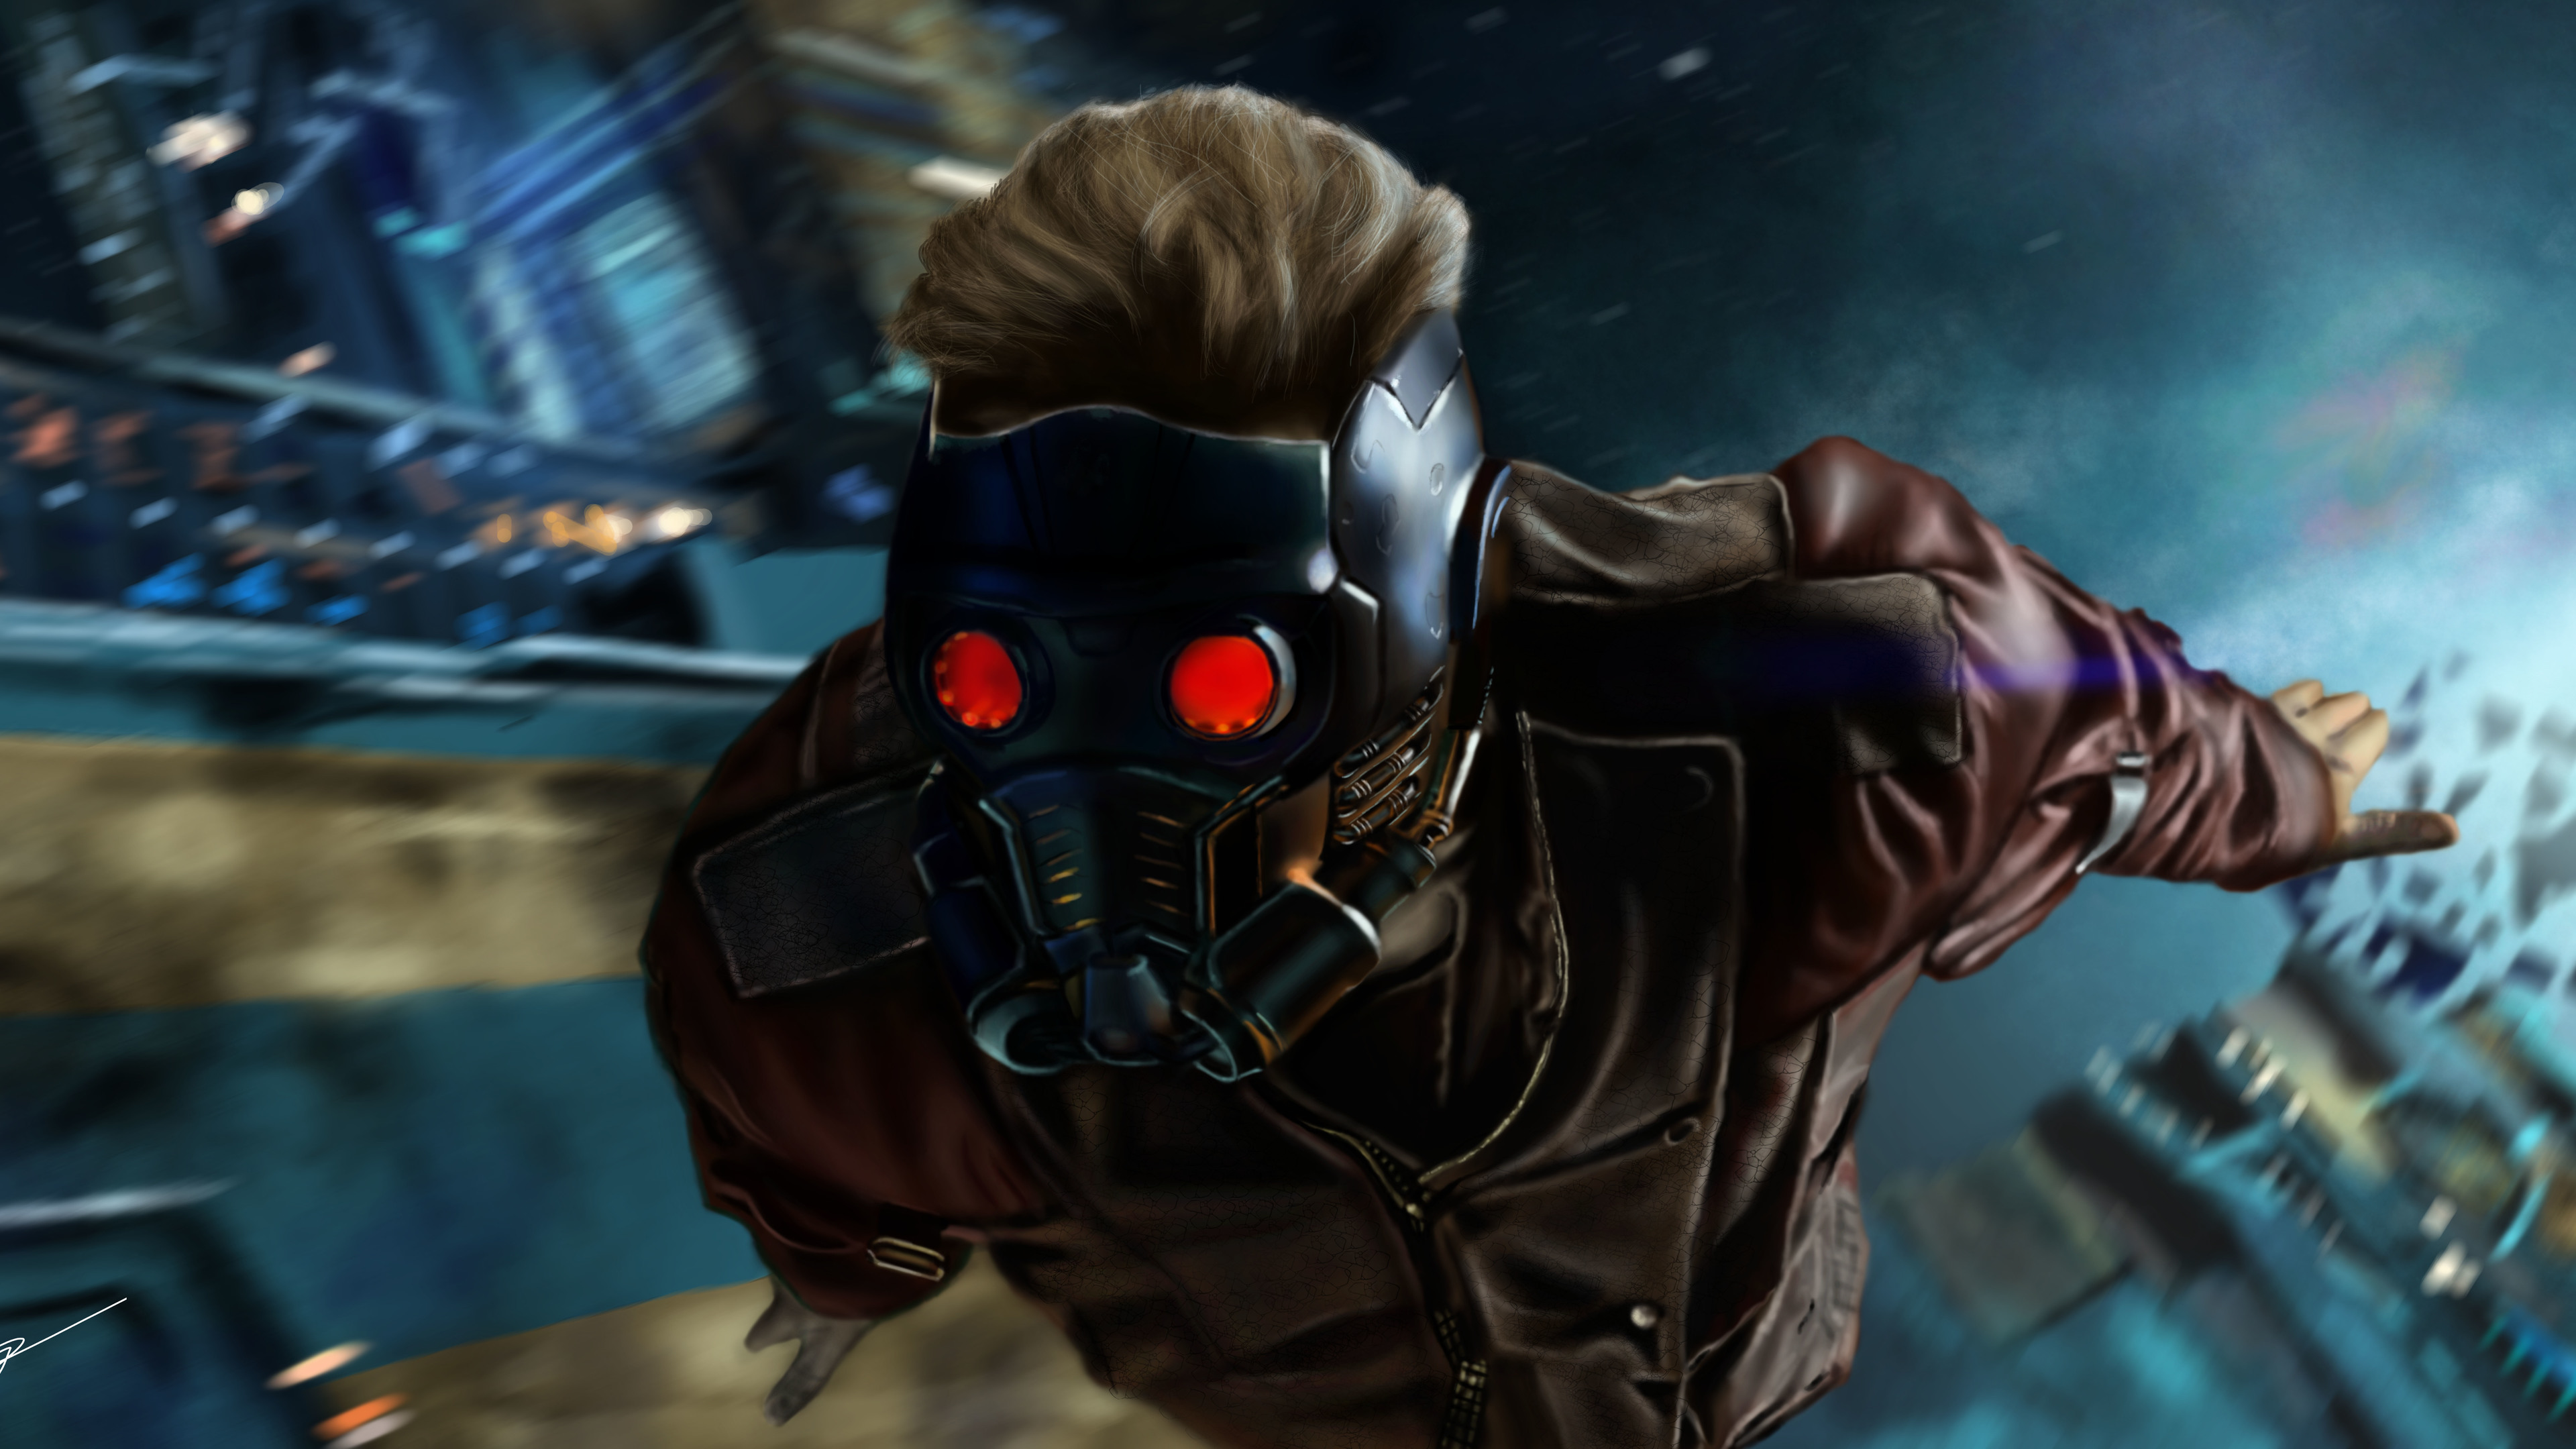 star lord 12k 1536522490 - Star Lord 12k - superheroes wallpapers, star lord wallpapers, hd-wallpapers, digital art wallpapers, deviantart wallpapers, artwork wallpapers, artist wallpapers, 8k wallpapers, 5k wallpapers, 4k-wallpapers, 12k wallpapers, 10k wallpapers